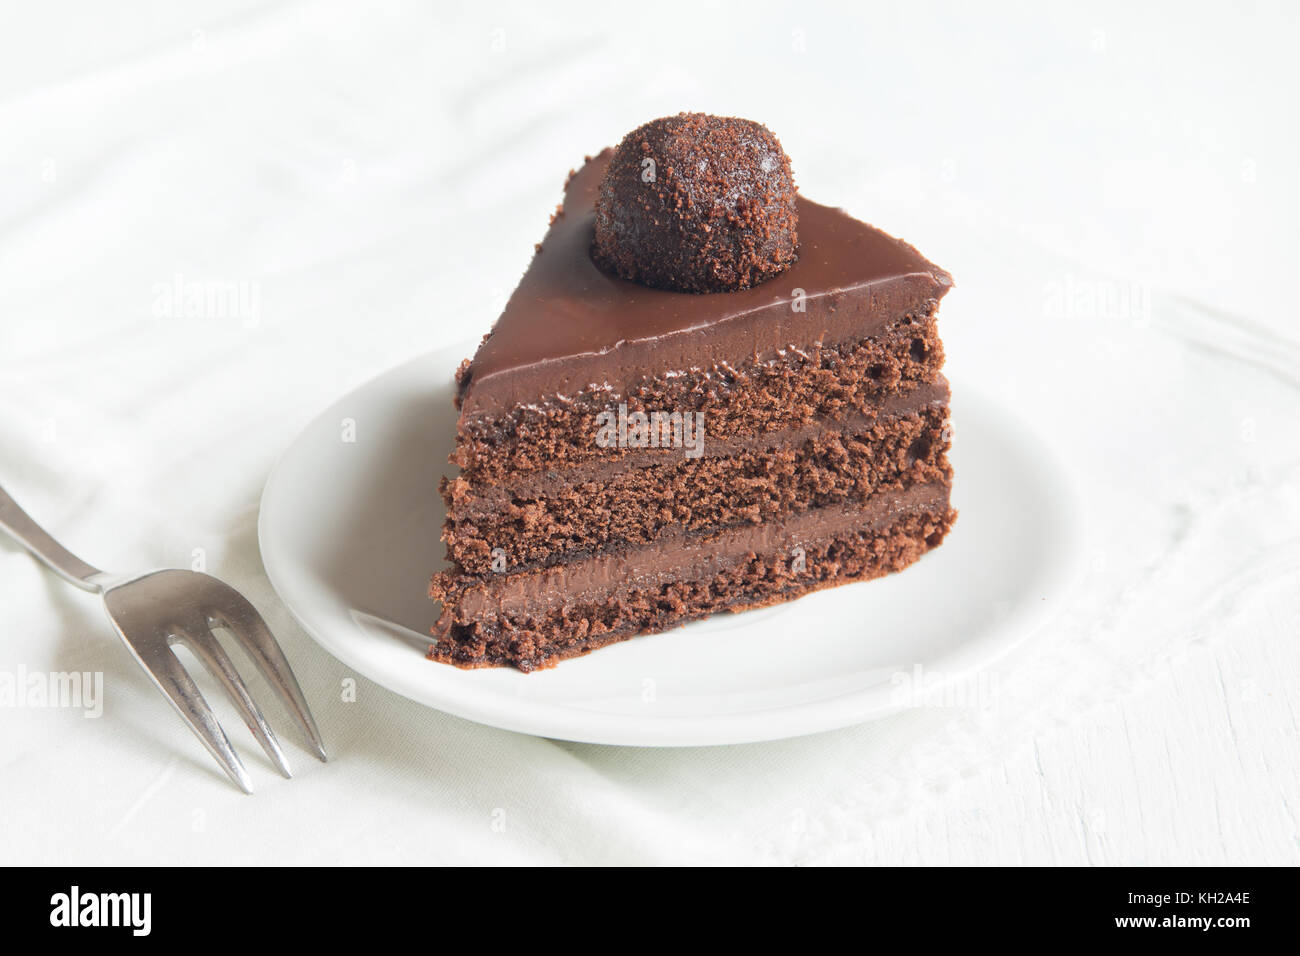 Piece of Chocolate Cake on plate and white background. Homemade chocolate cake. & Piece of Chocolate Cake on plate and white background. Homemade ...